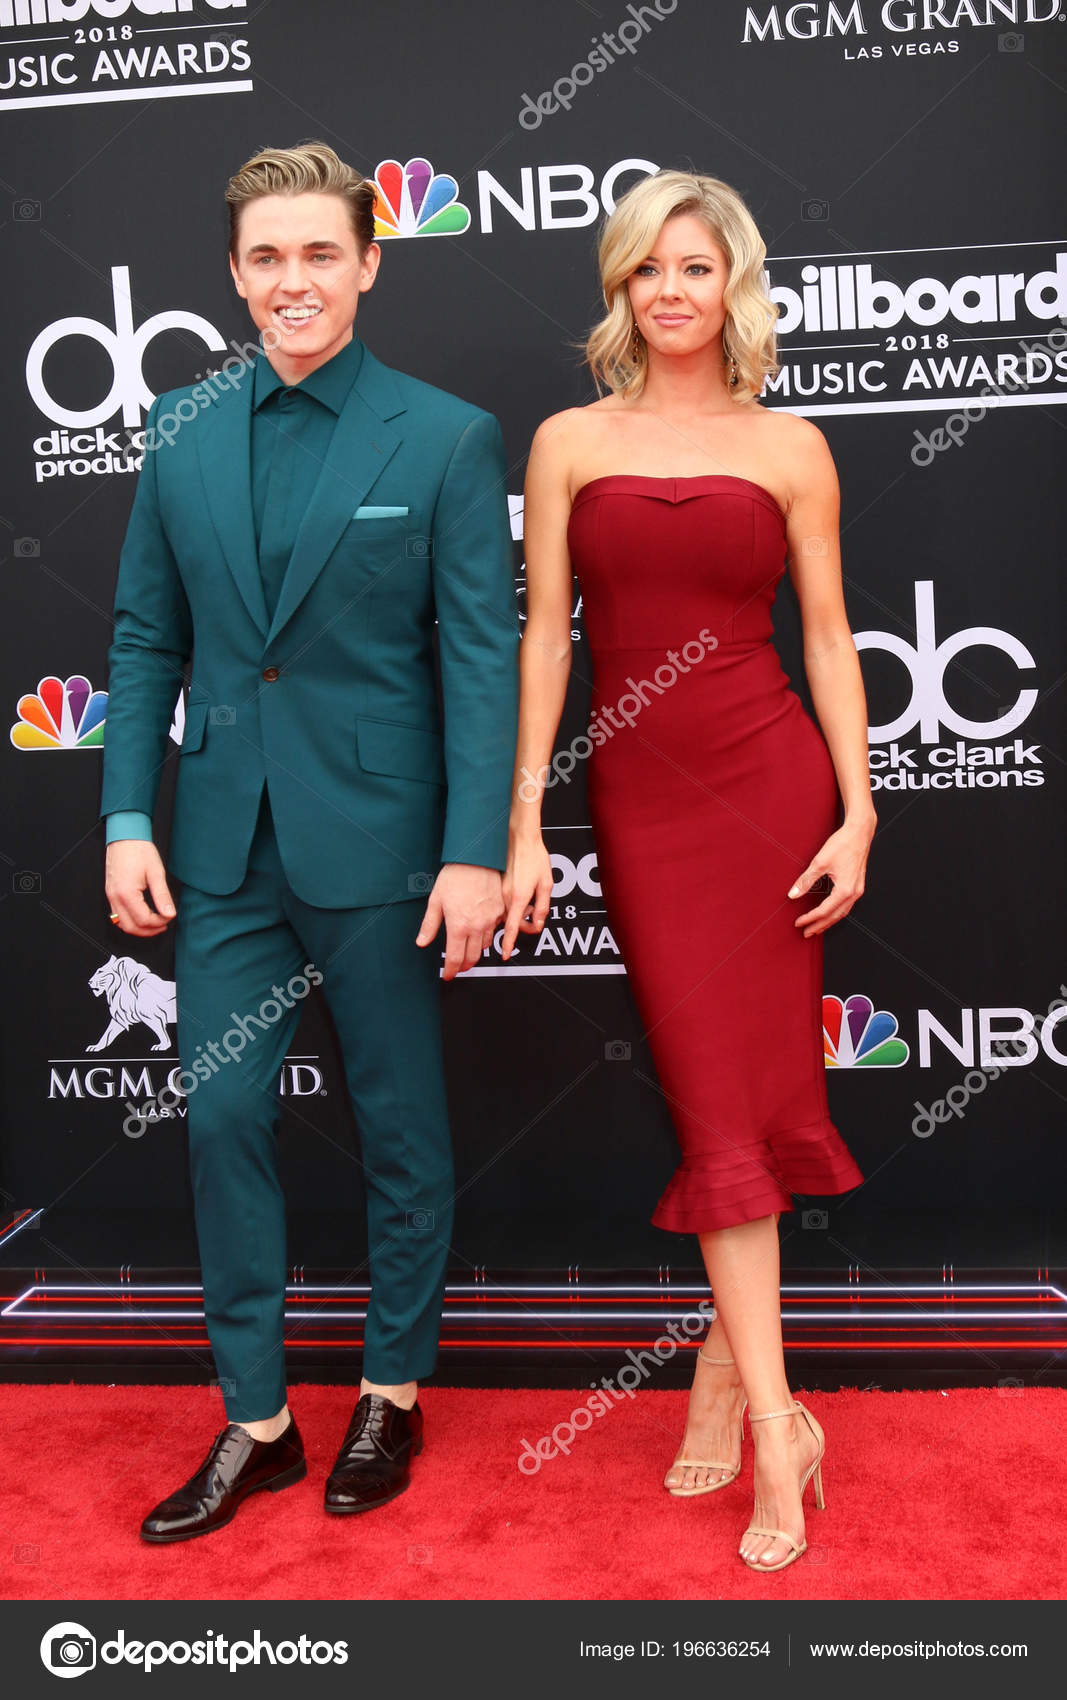 Las Vegas May Jesse Mccartney Katie Peterson 2018 Billboard Music Stock Photo